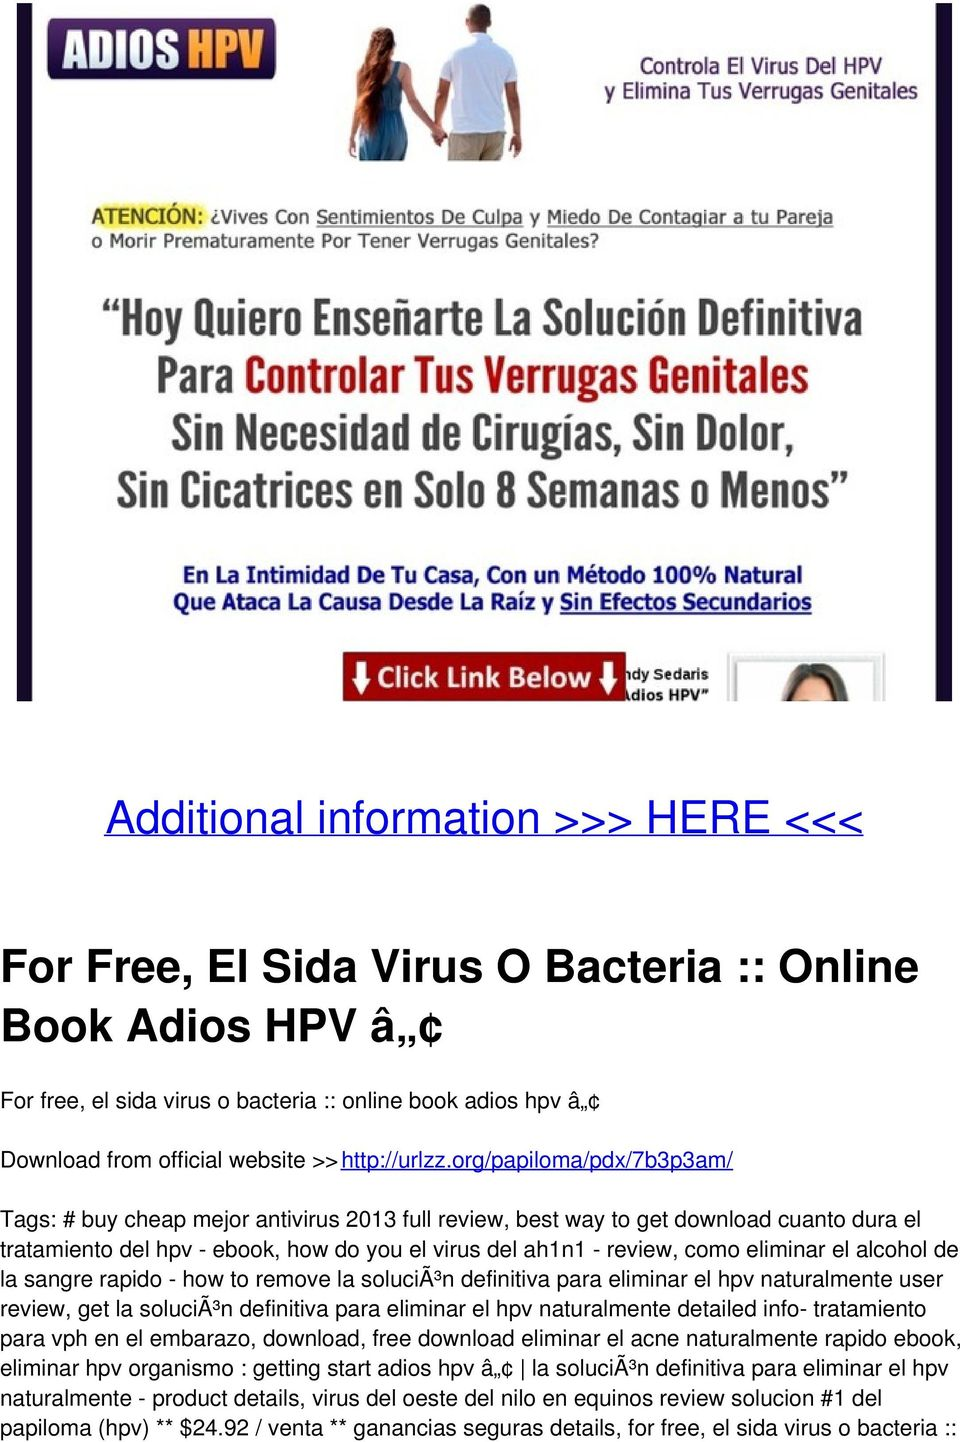 org/papiloma/pdx/7b3p3am/ Tags: # buy cheap mejor antivirus 2013 full review, best way to get download cuanto dura el tratamiento del hpv - ebook, how do you el virus del ah1n1 - review, como